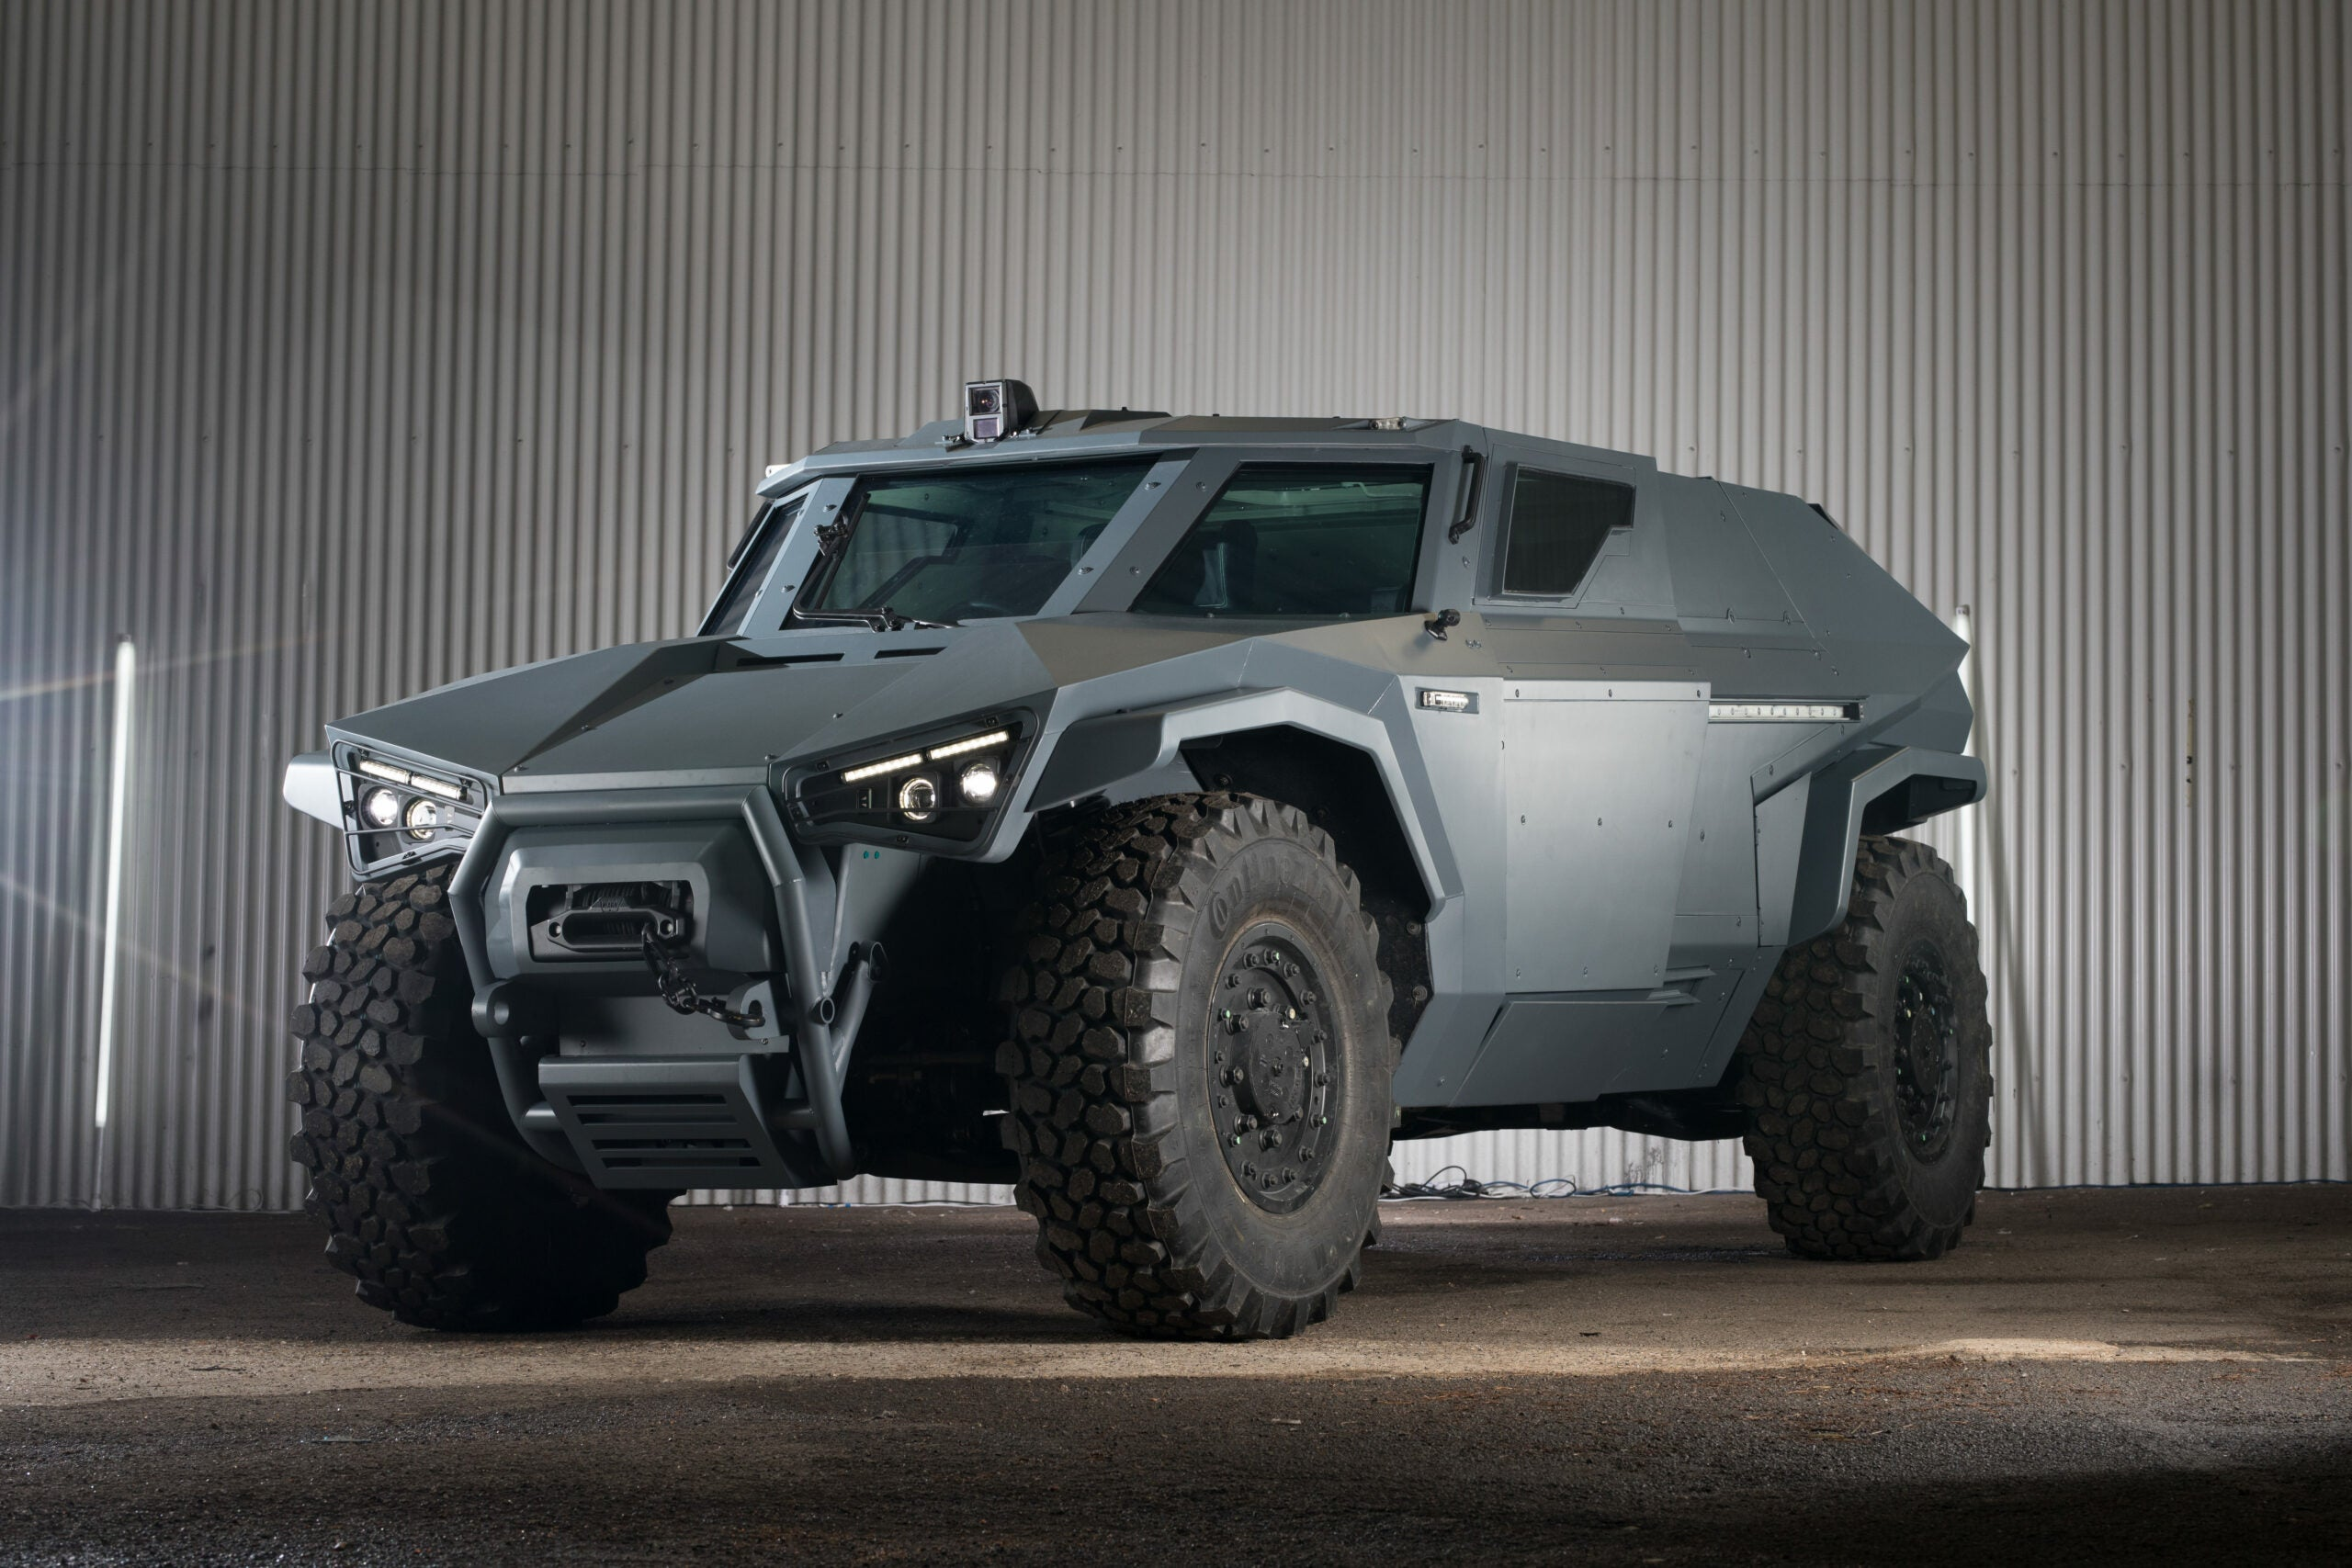 Volvo Group's new military vehicle can drive sideways, like a crab